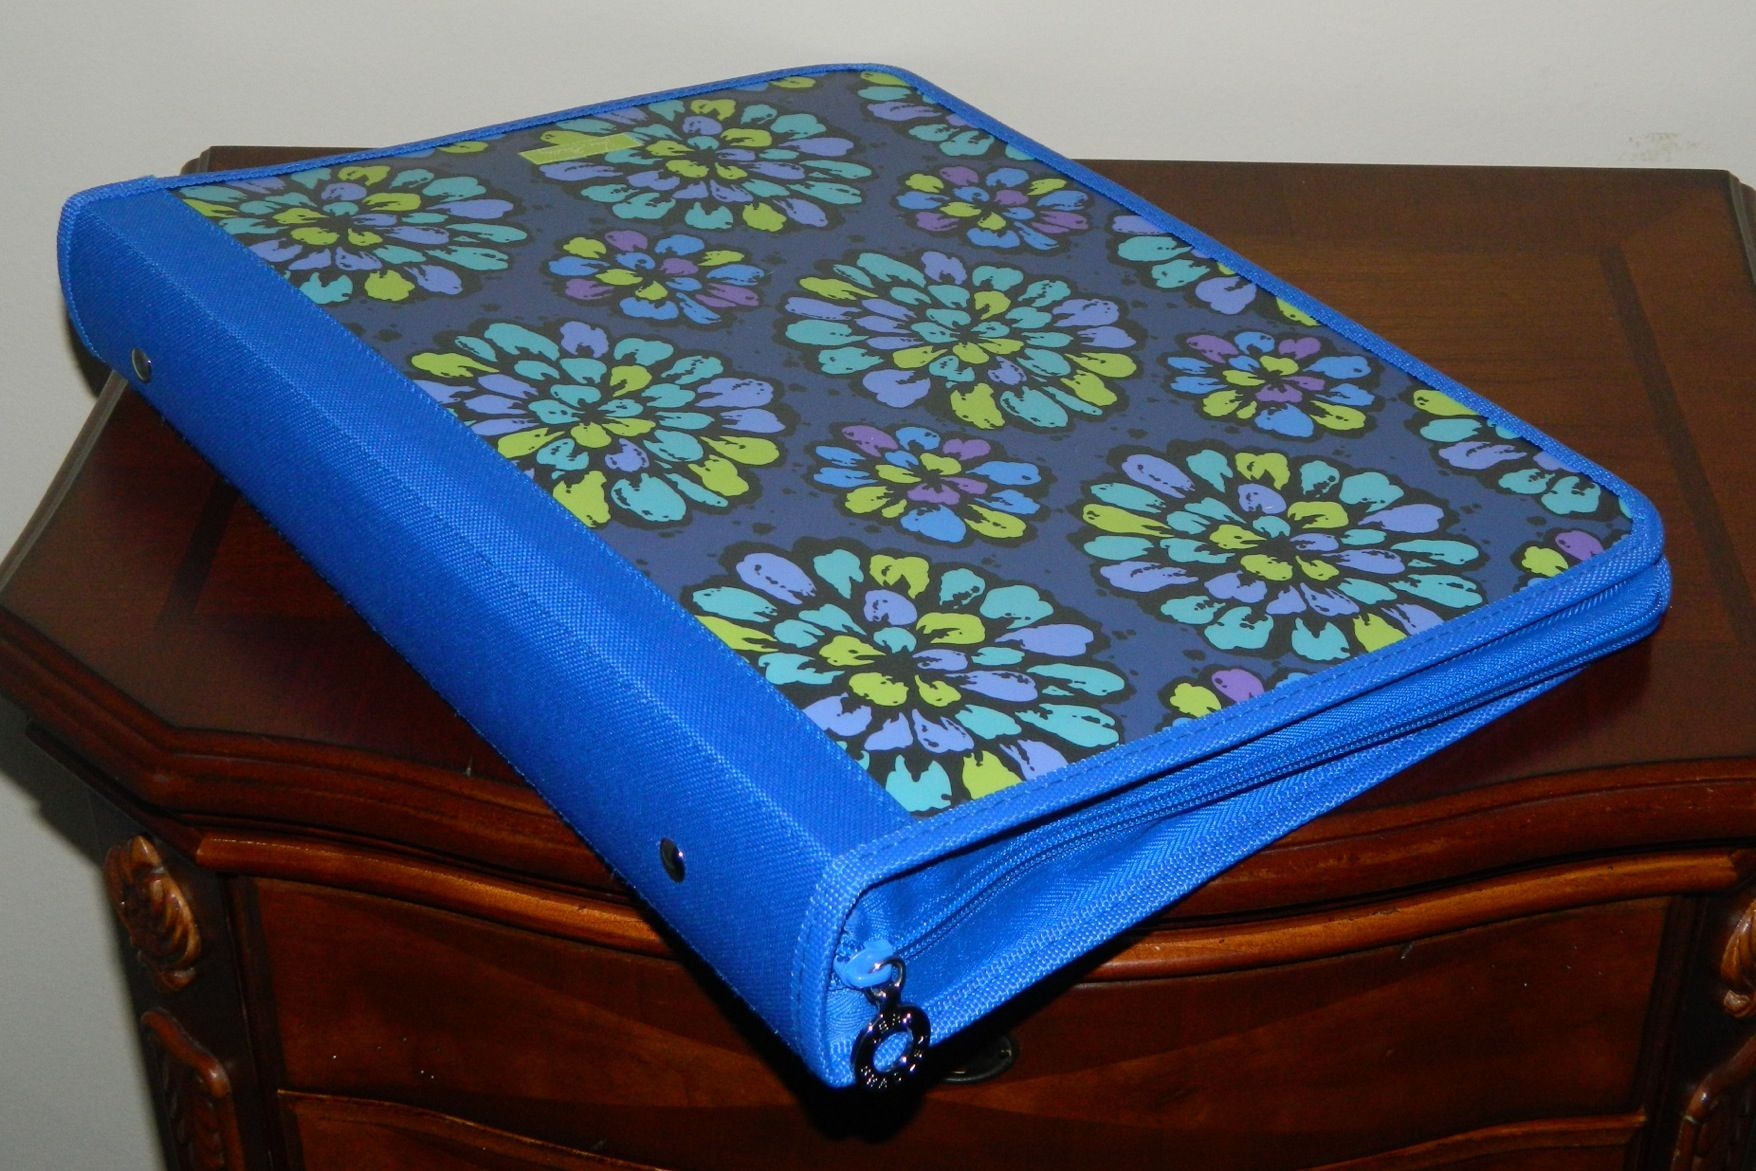 Flexi Zip- Binder Vera Bradley - Indigo Pop 24.00